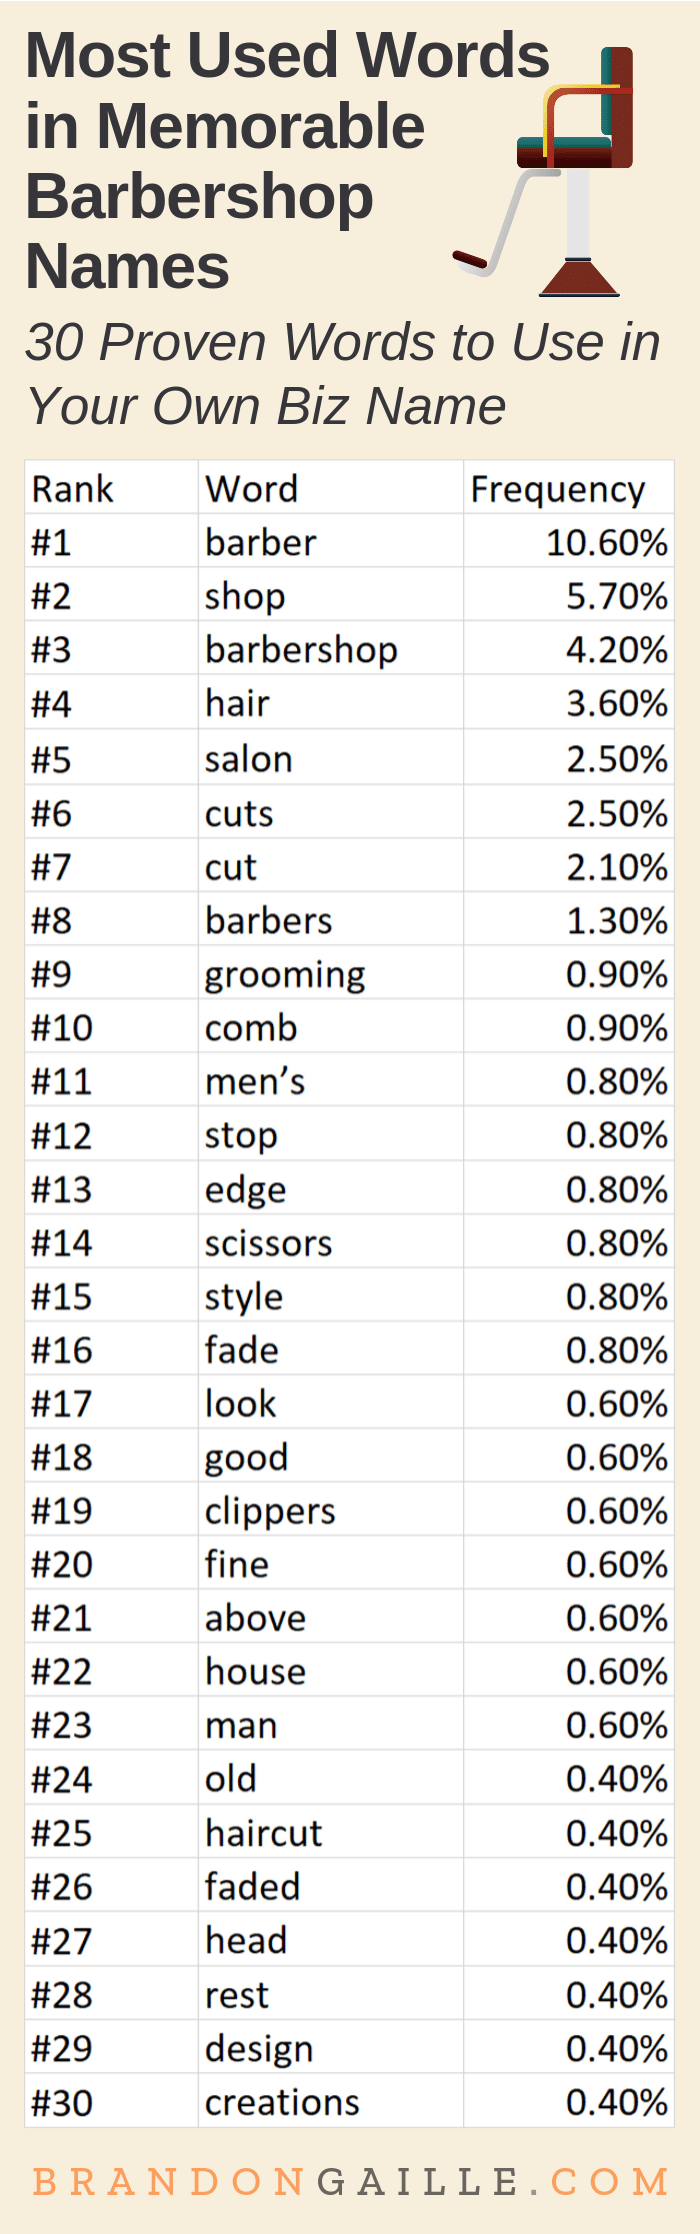 250 Cool And Funny Barbershop Names Brandongaille Com